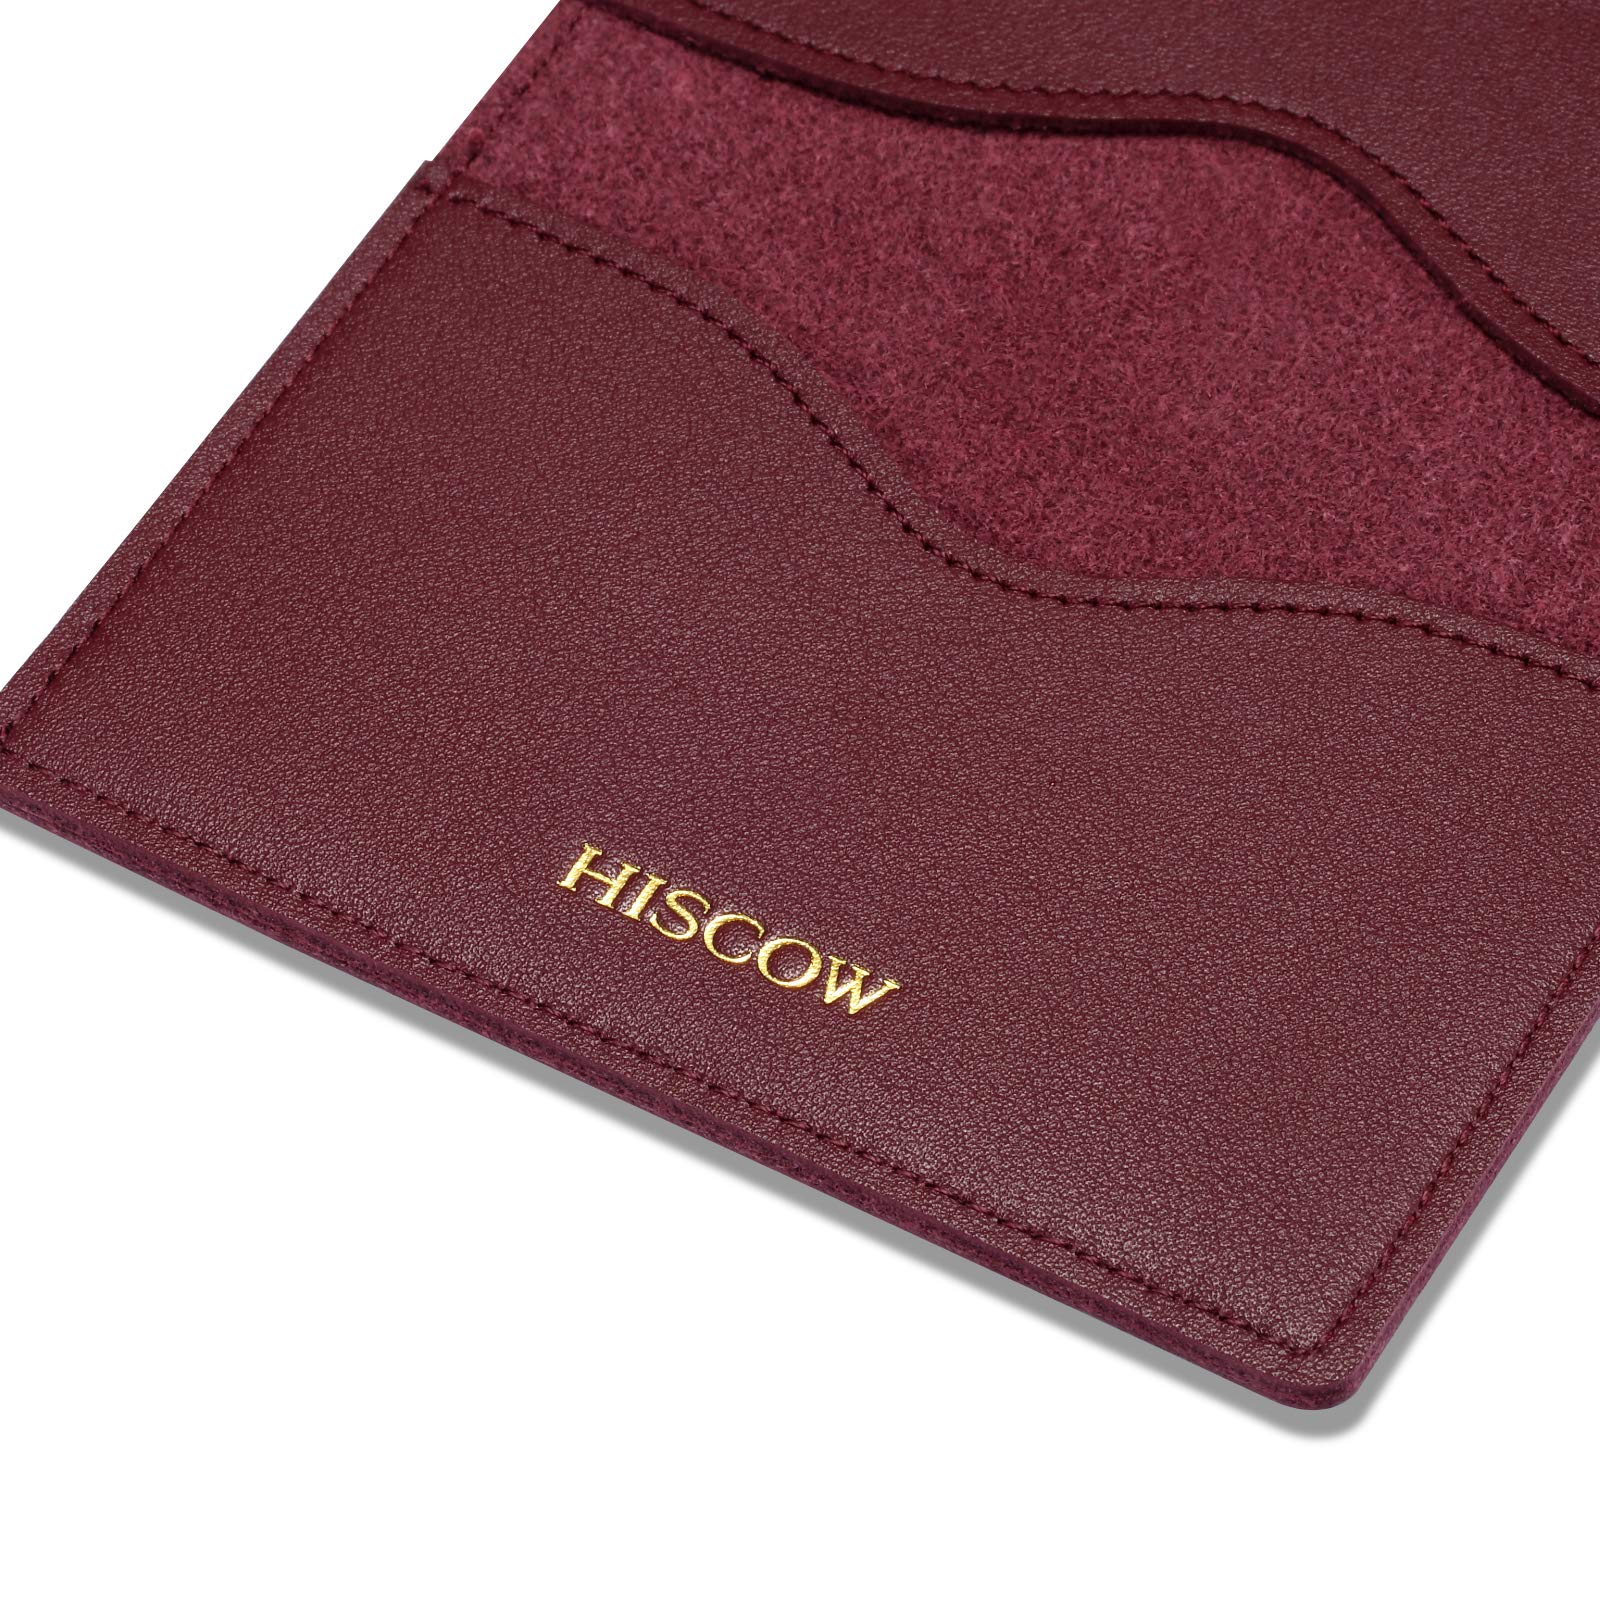 HISCOW Minimalist Thin Bifold Card Holder - Italian Calfskin (Bordeaux) by HISCOW (Image #5)